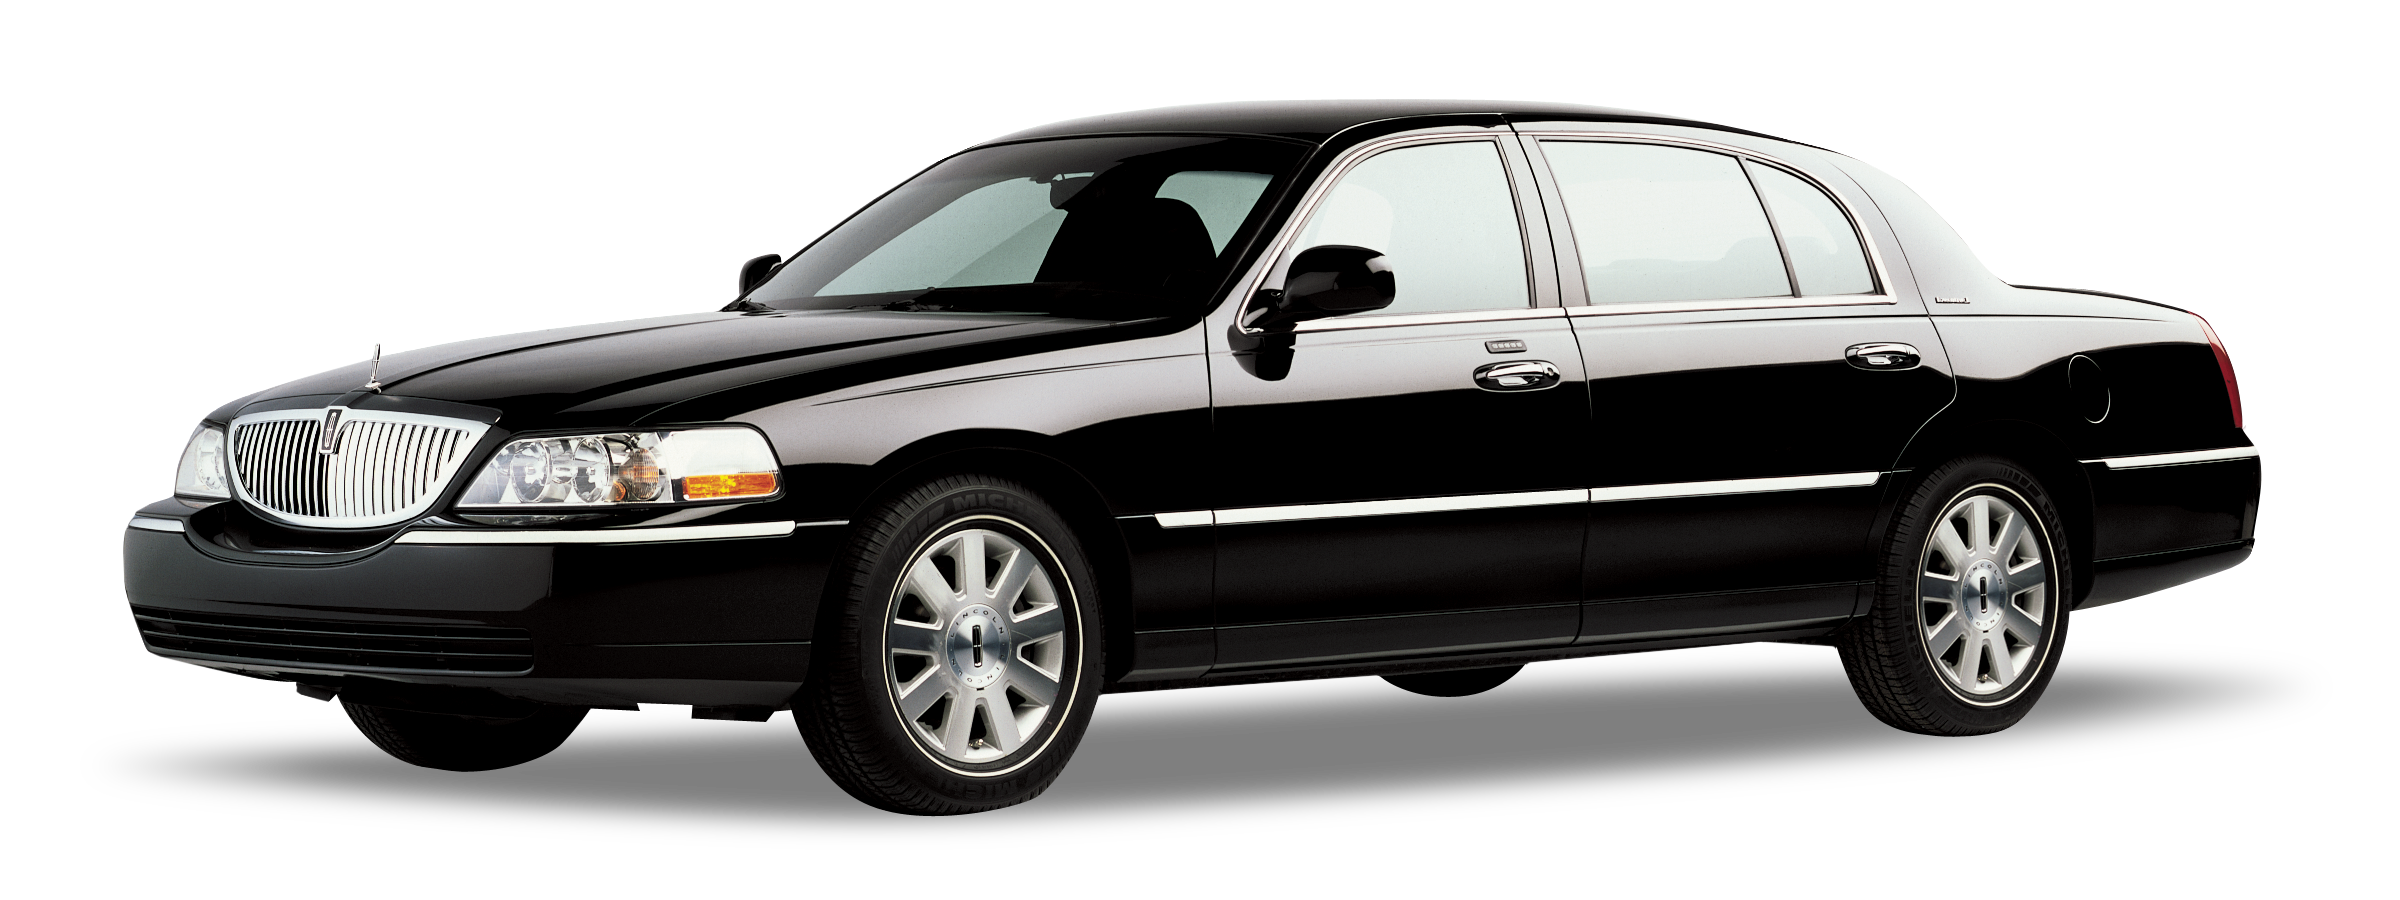 Used Lincoln Town Car Awesome 4 Penger Black Towncar Charlotte Limousine Transportation